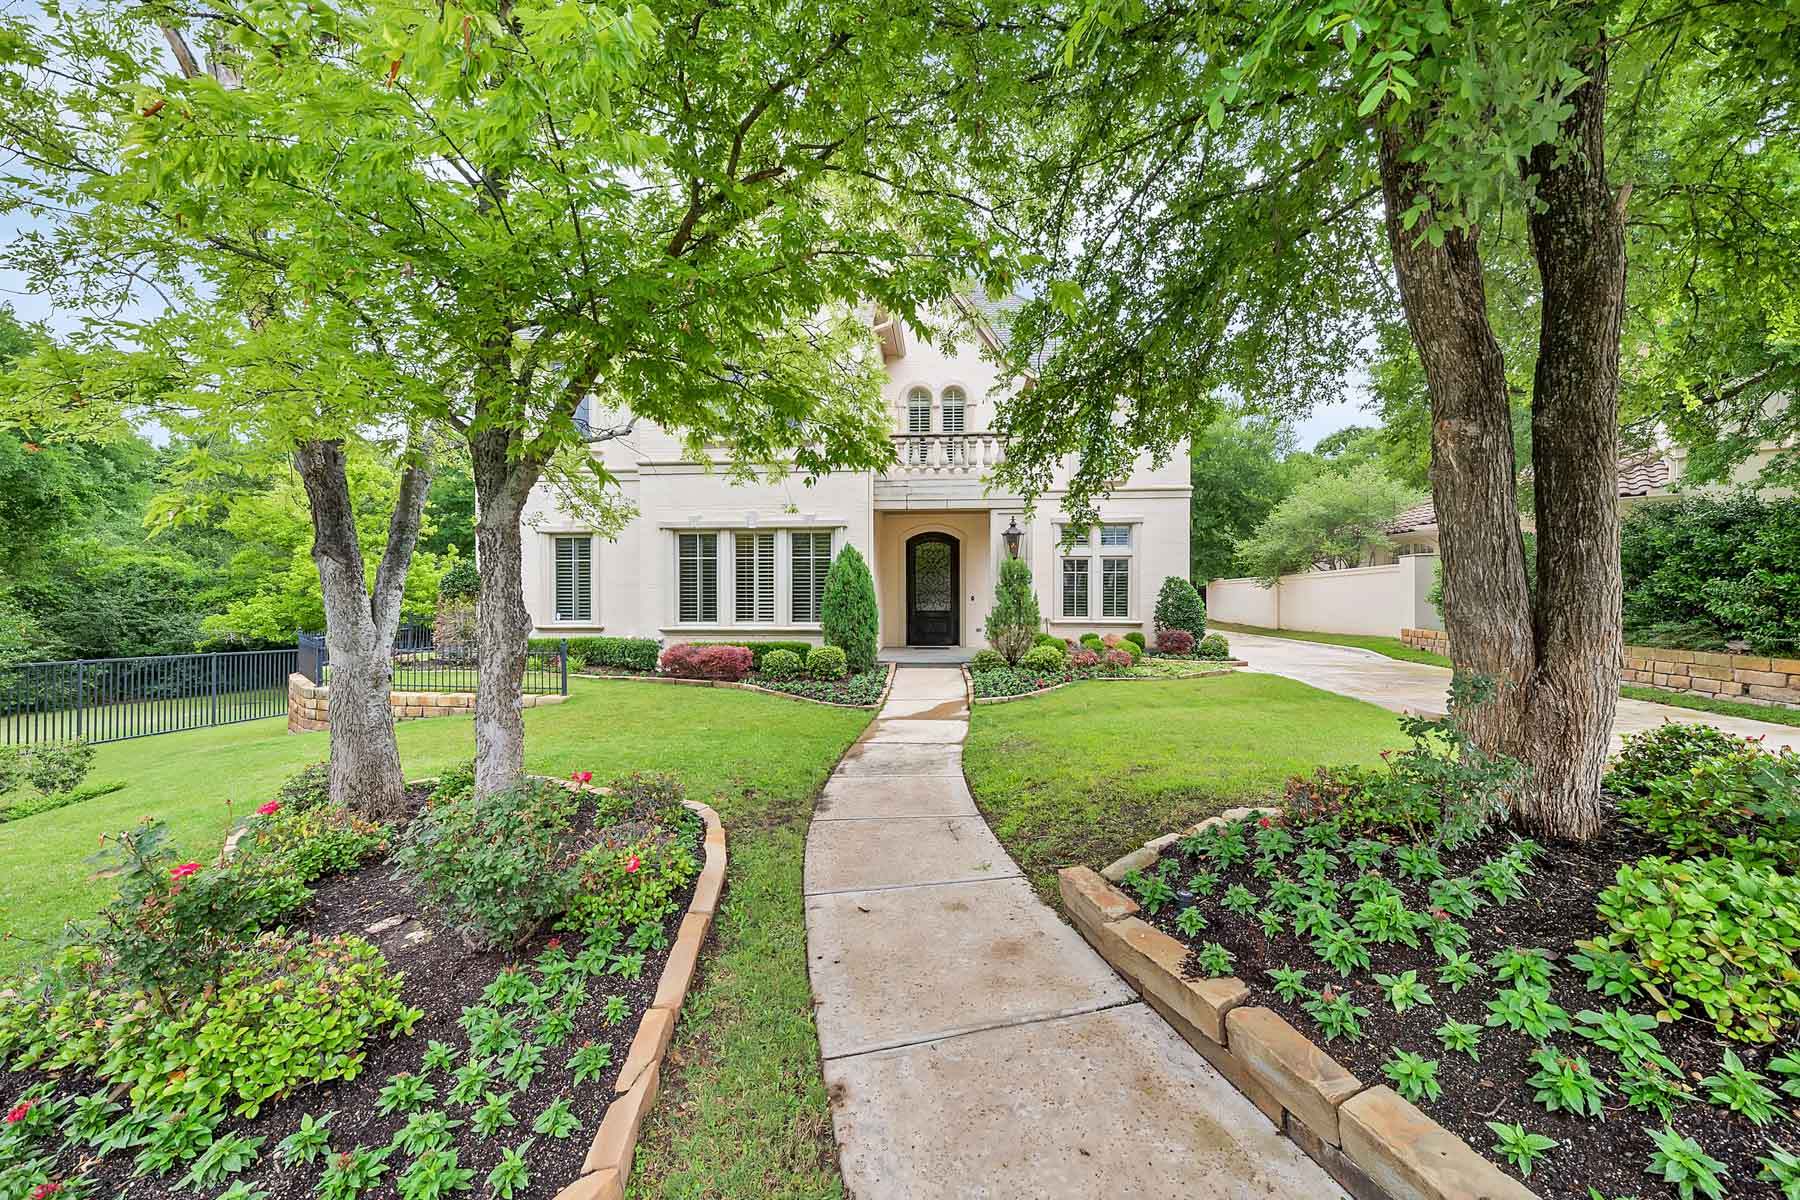 Maison unifamiliale pour l Vente à 1501 Rivercrest Court, Fort Worth 1501 Rivercrest Ct Fort Worth, Texas, 76107 États-Unis